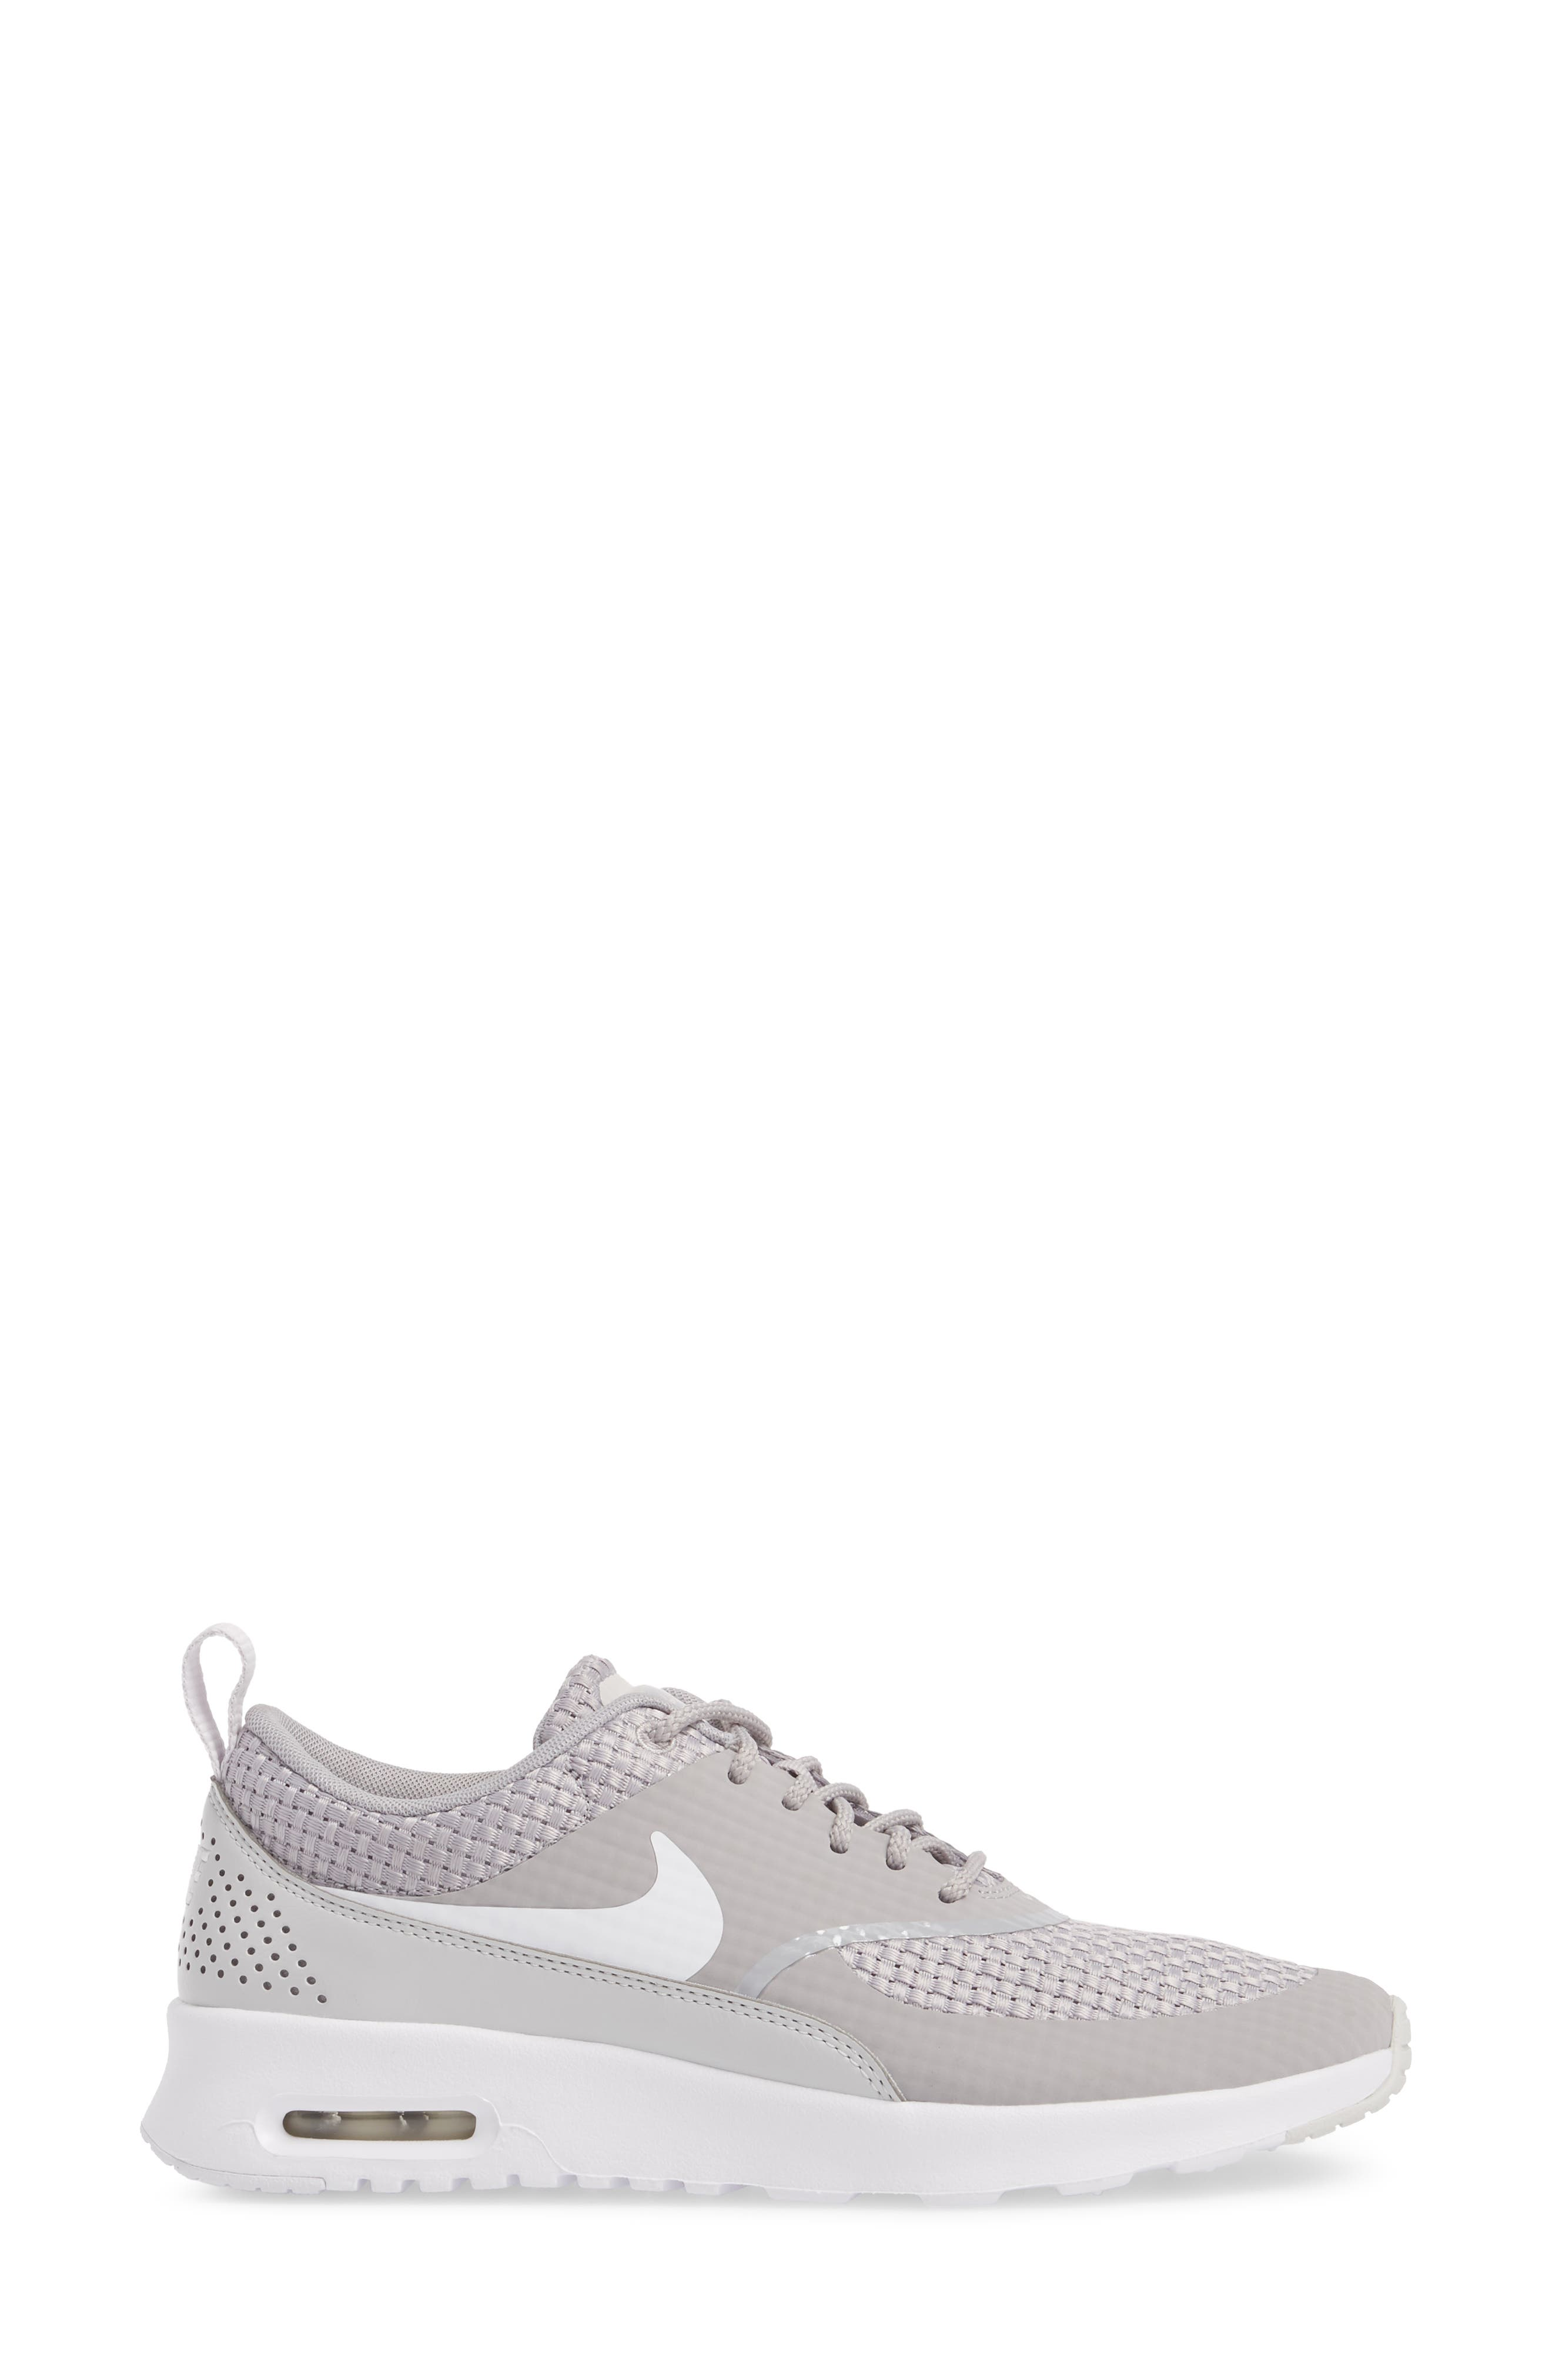 Air Max Thea Sneaker,                             Alternate thumbnail 3, color,                             Atmosphere Grey/ White